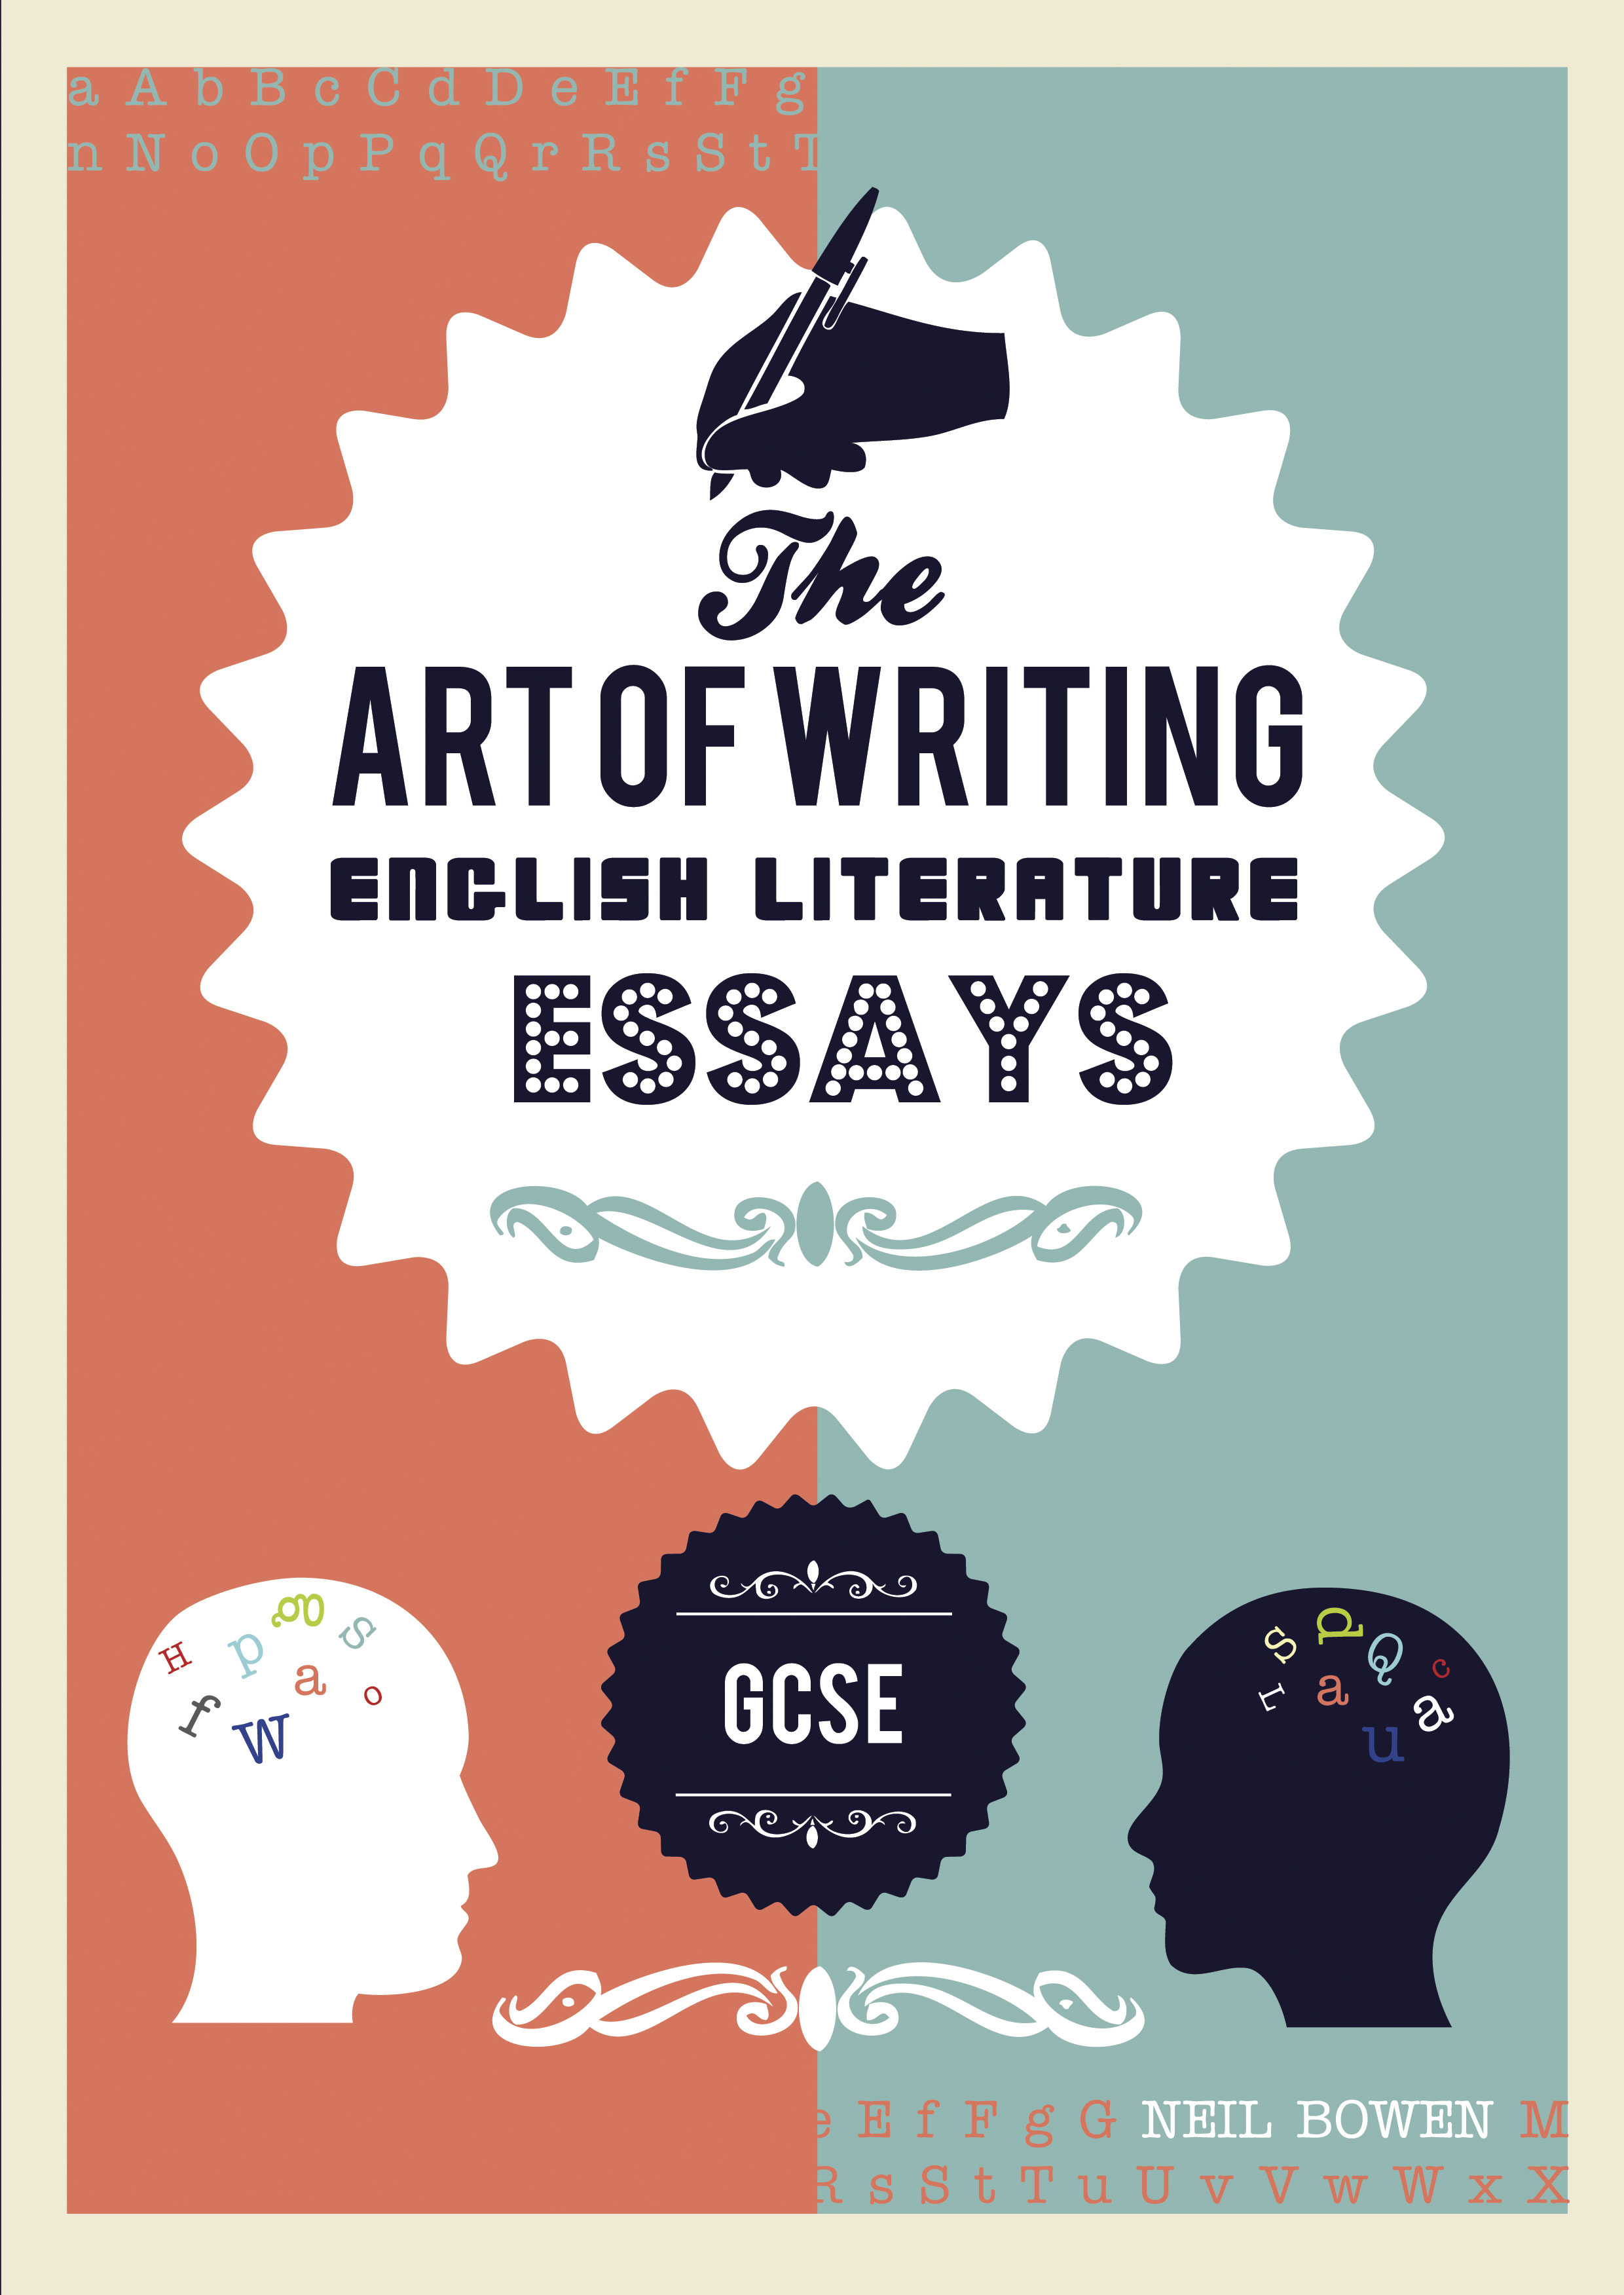 How To Write An Essay Proposal Example Book Review The Art Of Writing English Literature Essays Gcse Book Review  The Art Of Writing An Essay About Health also How To Write Proposal Essay Gcse Essays Book Review The Art Of Writing English Literature Essays  Essay Vs Paper